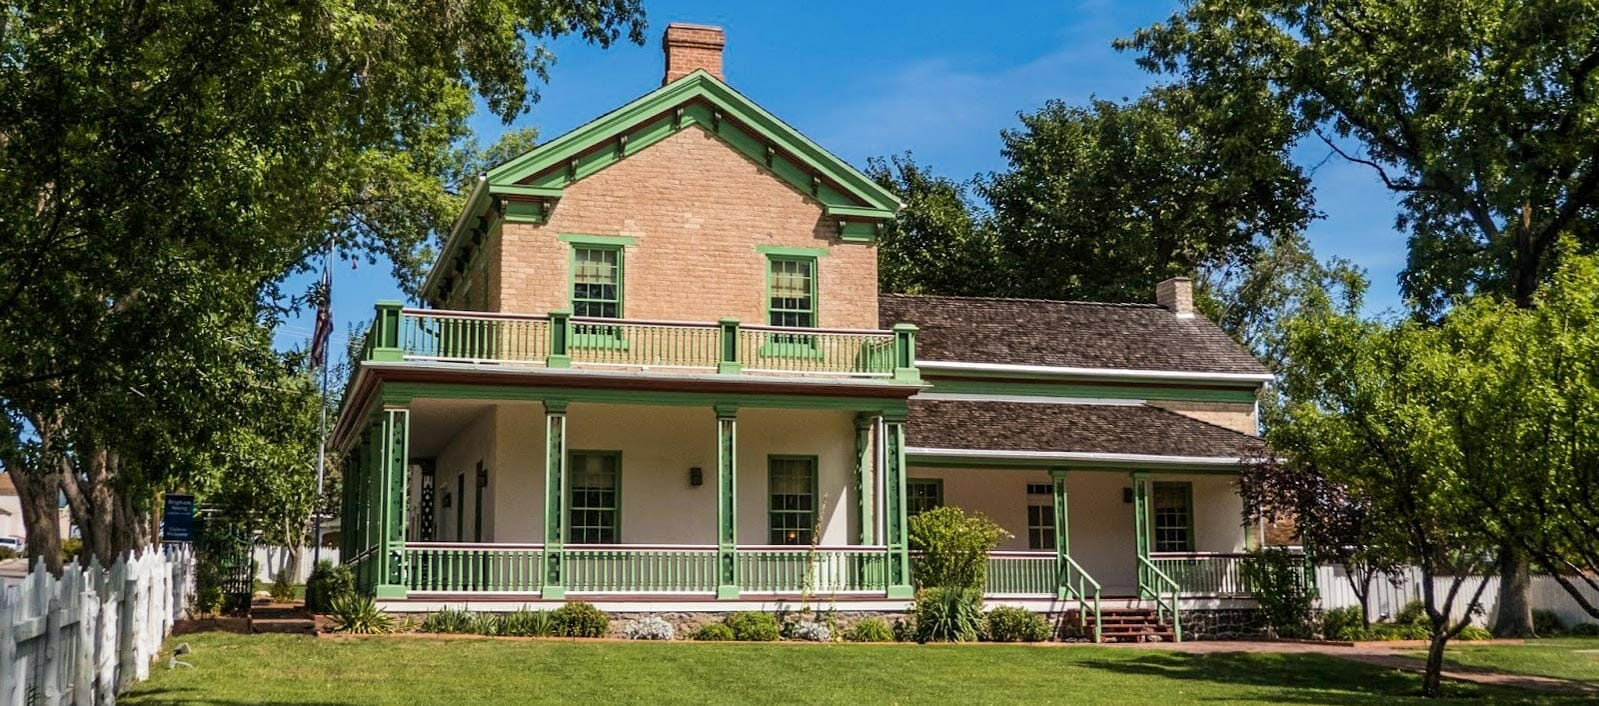 Brigham Young's Winter Home open for tours year-round, especially in the winter.